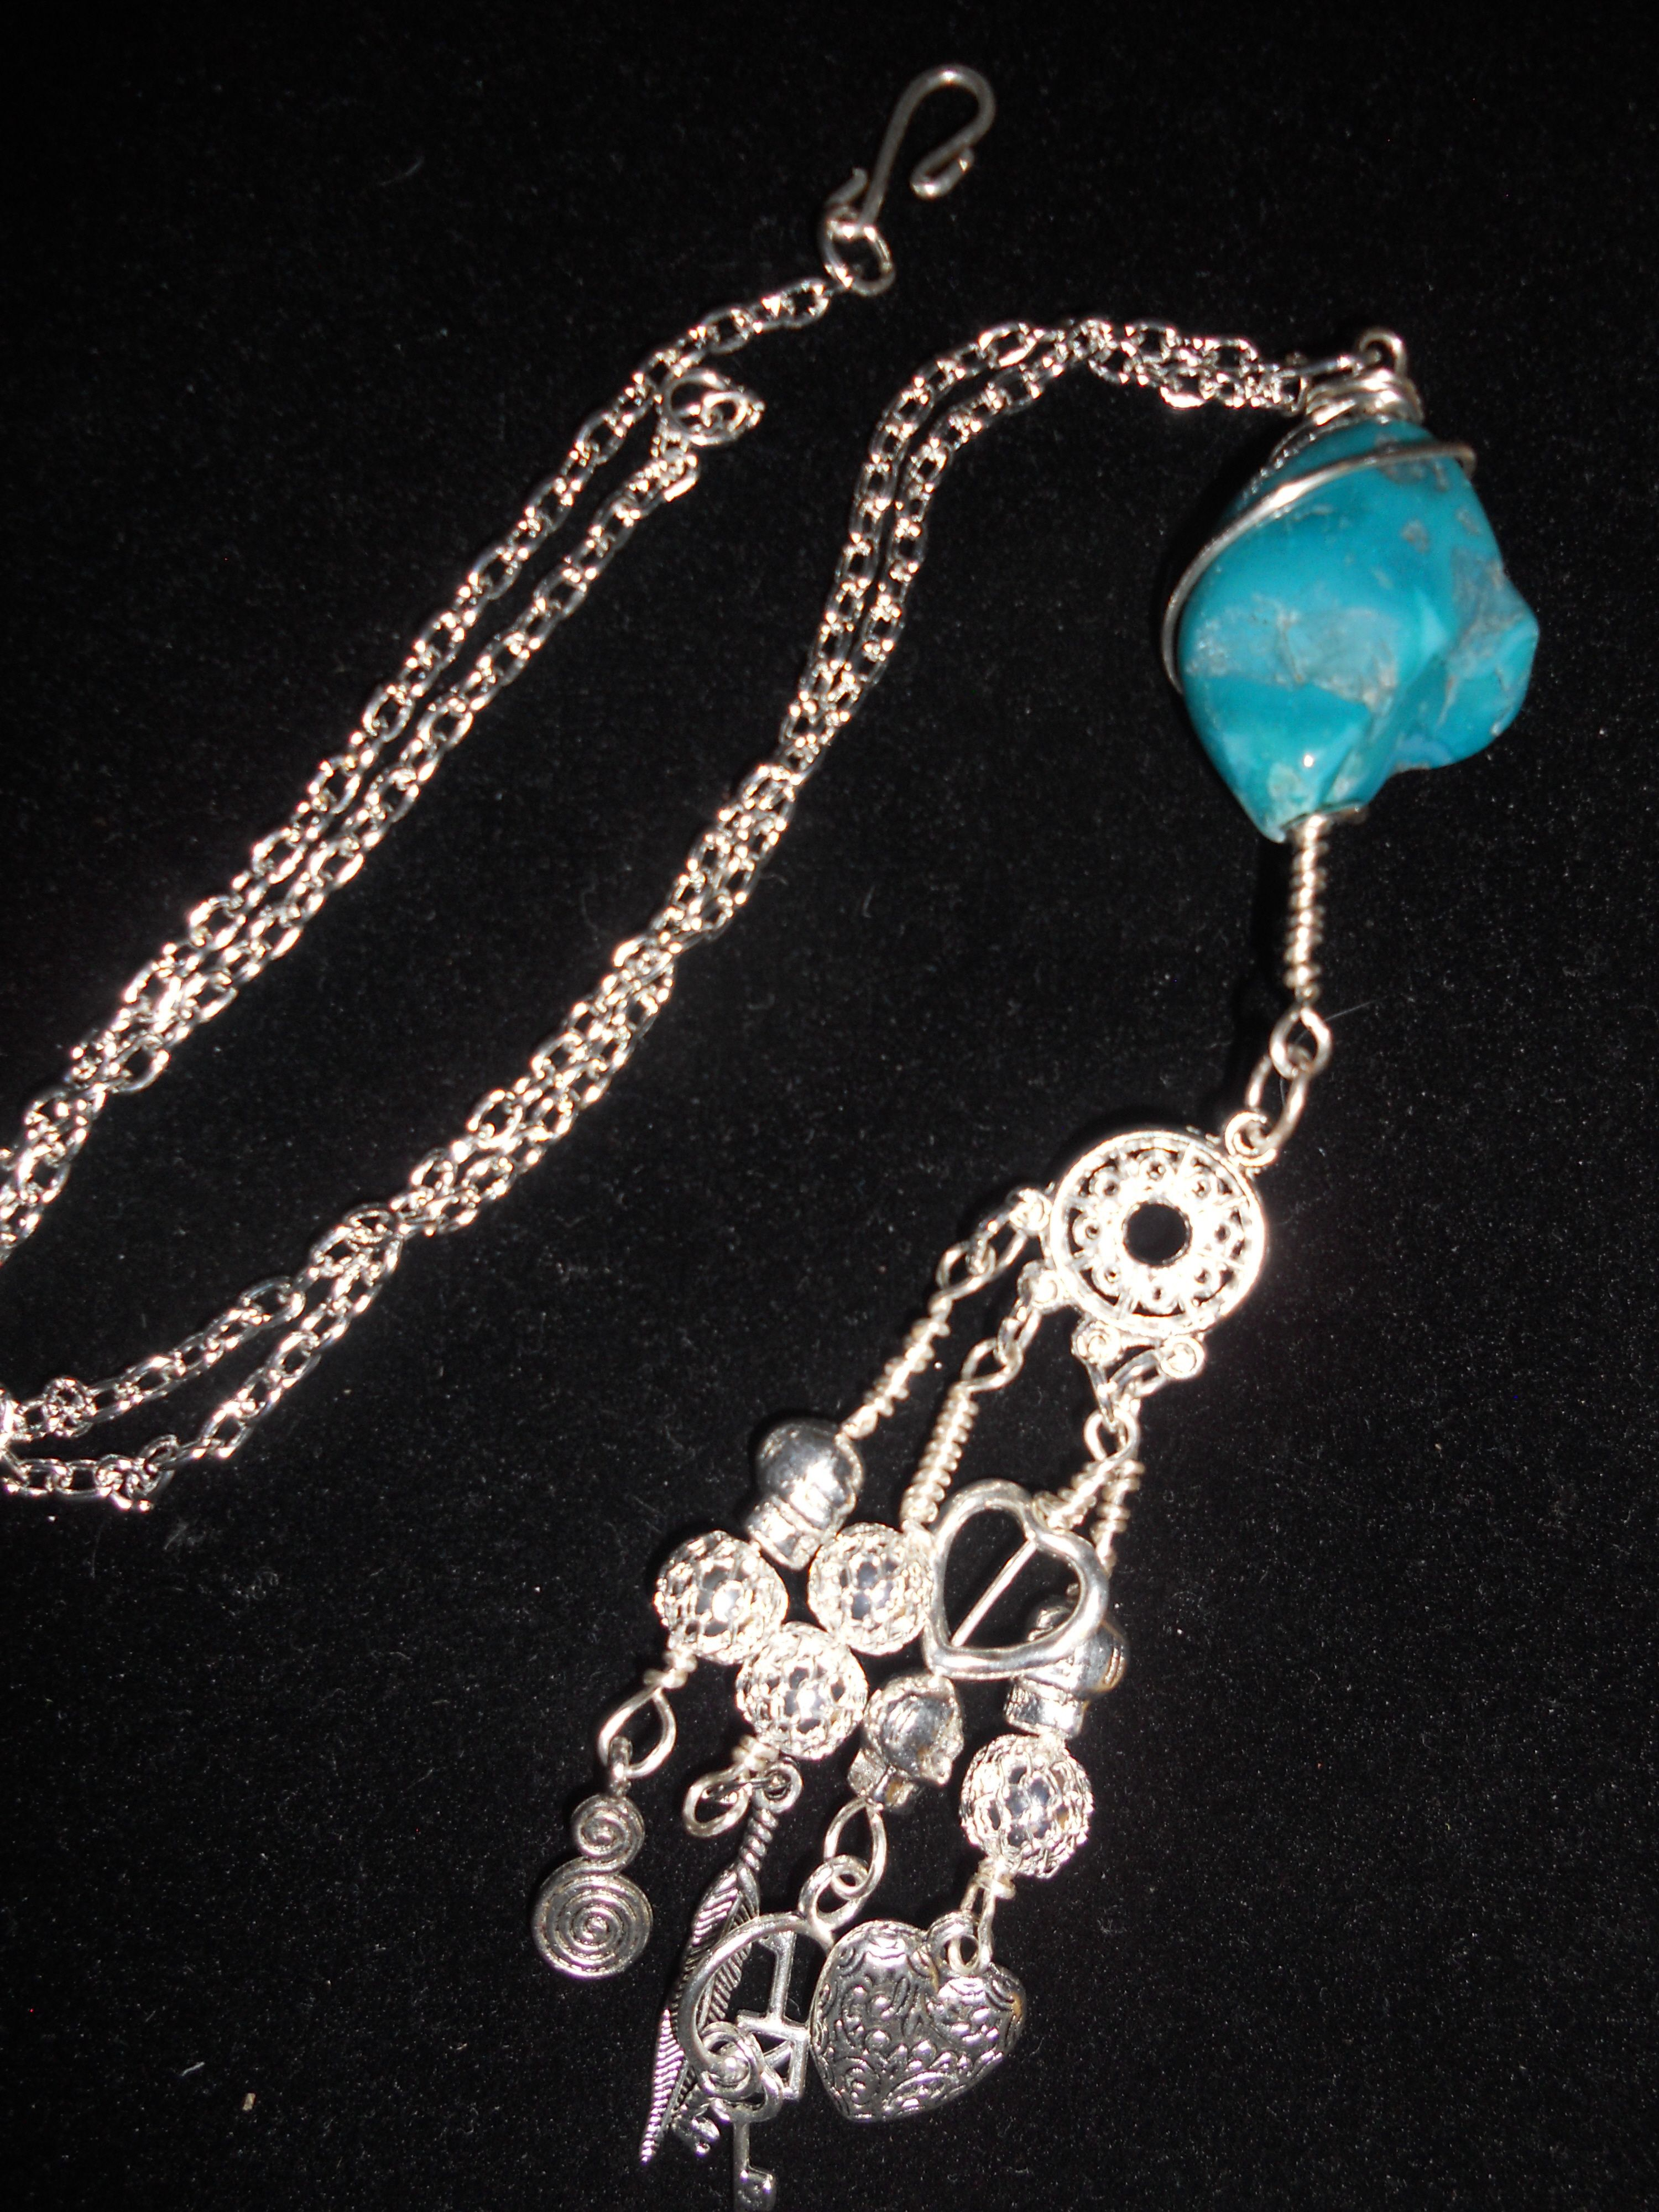 Beautiful blue stone necklace.